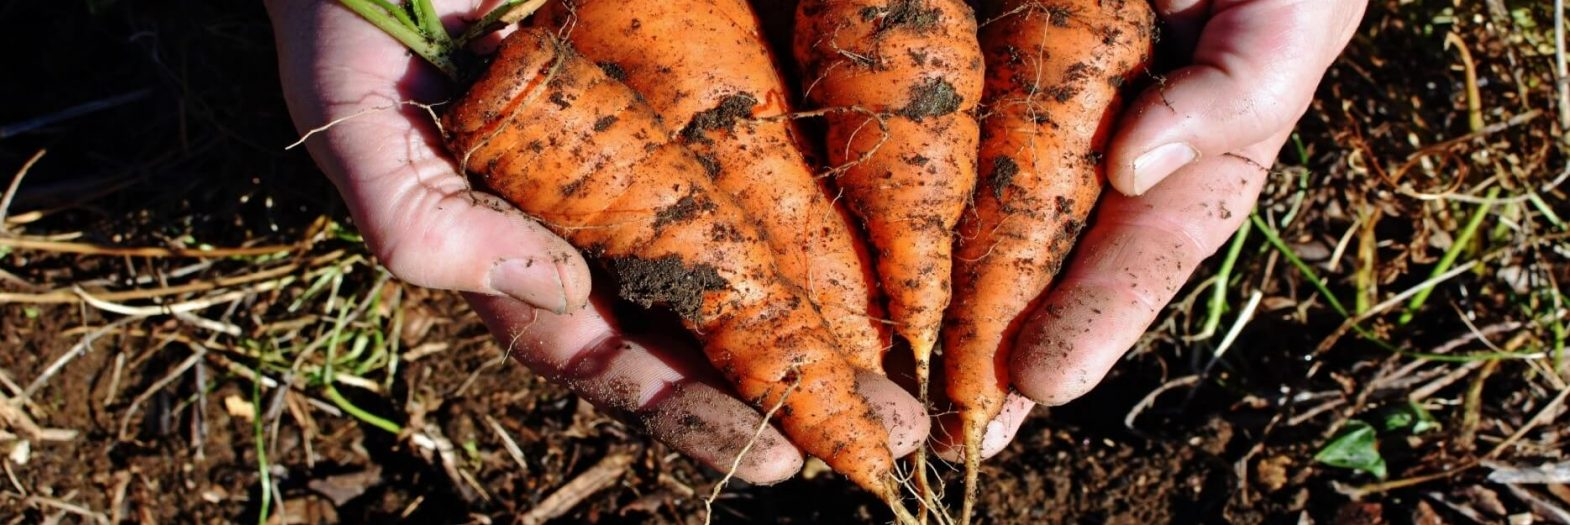 Freshly dug up carrots held over the solid they came from